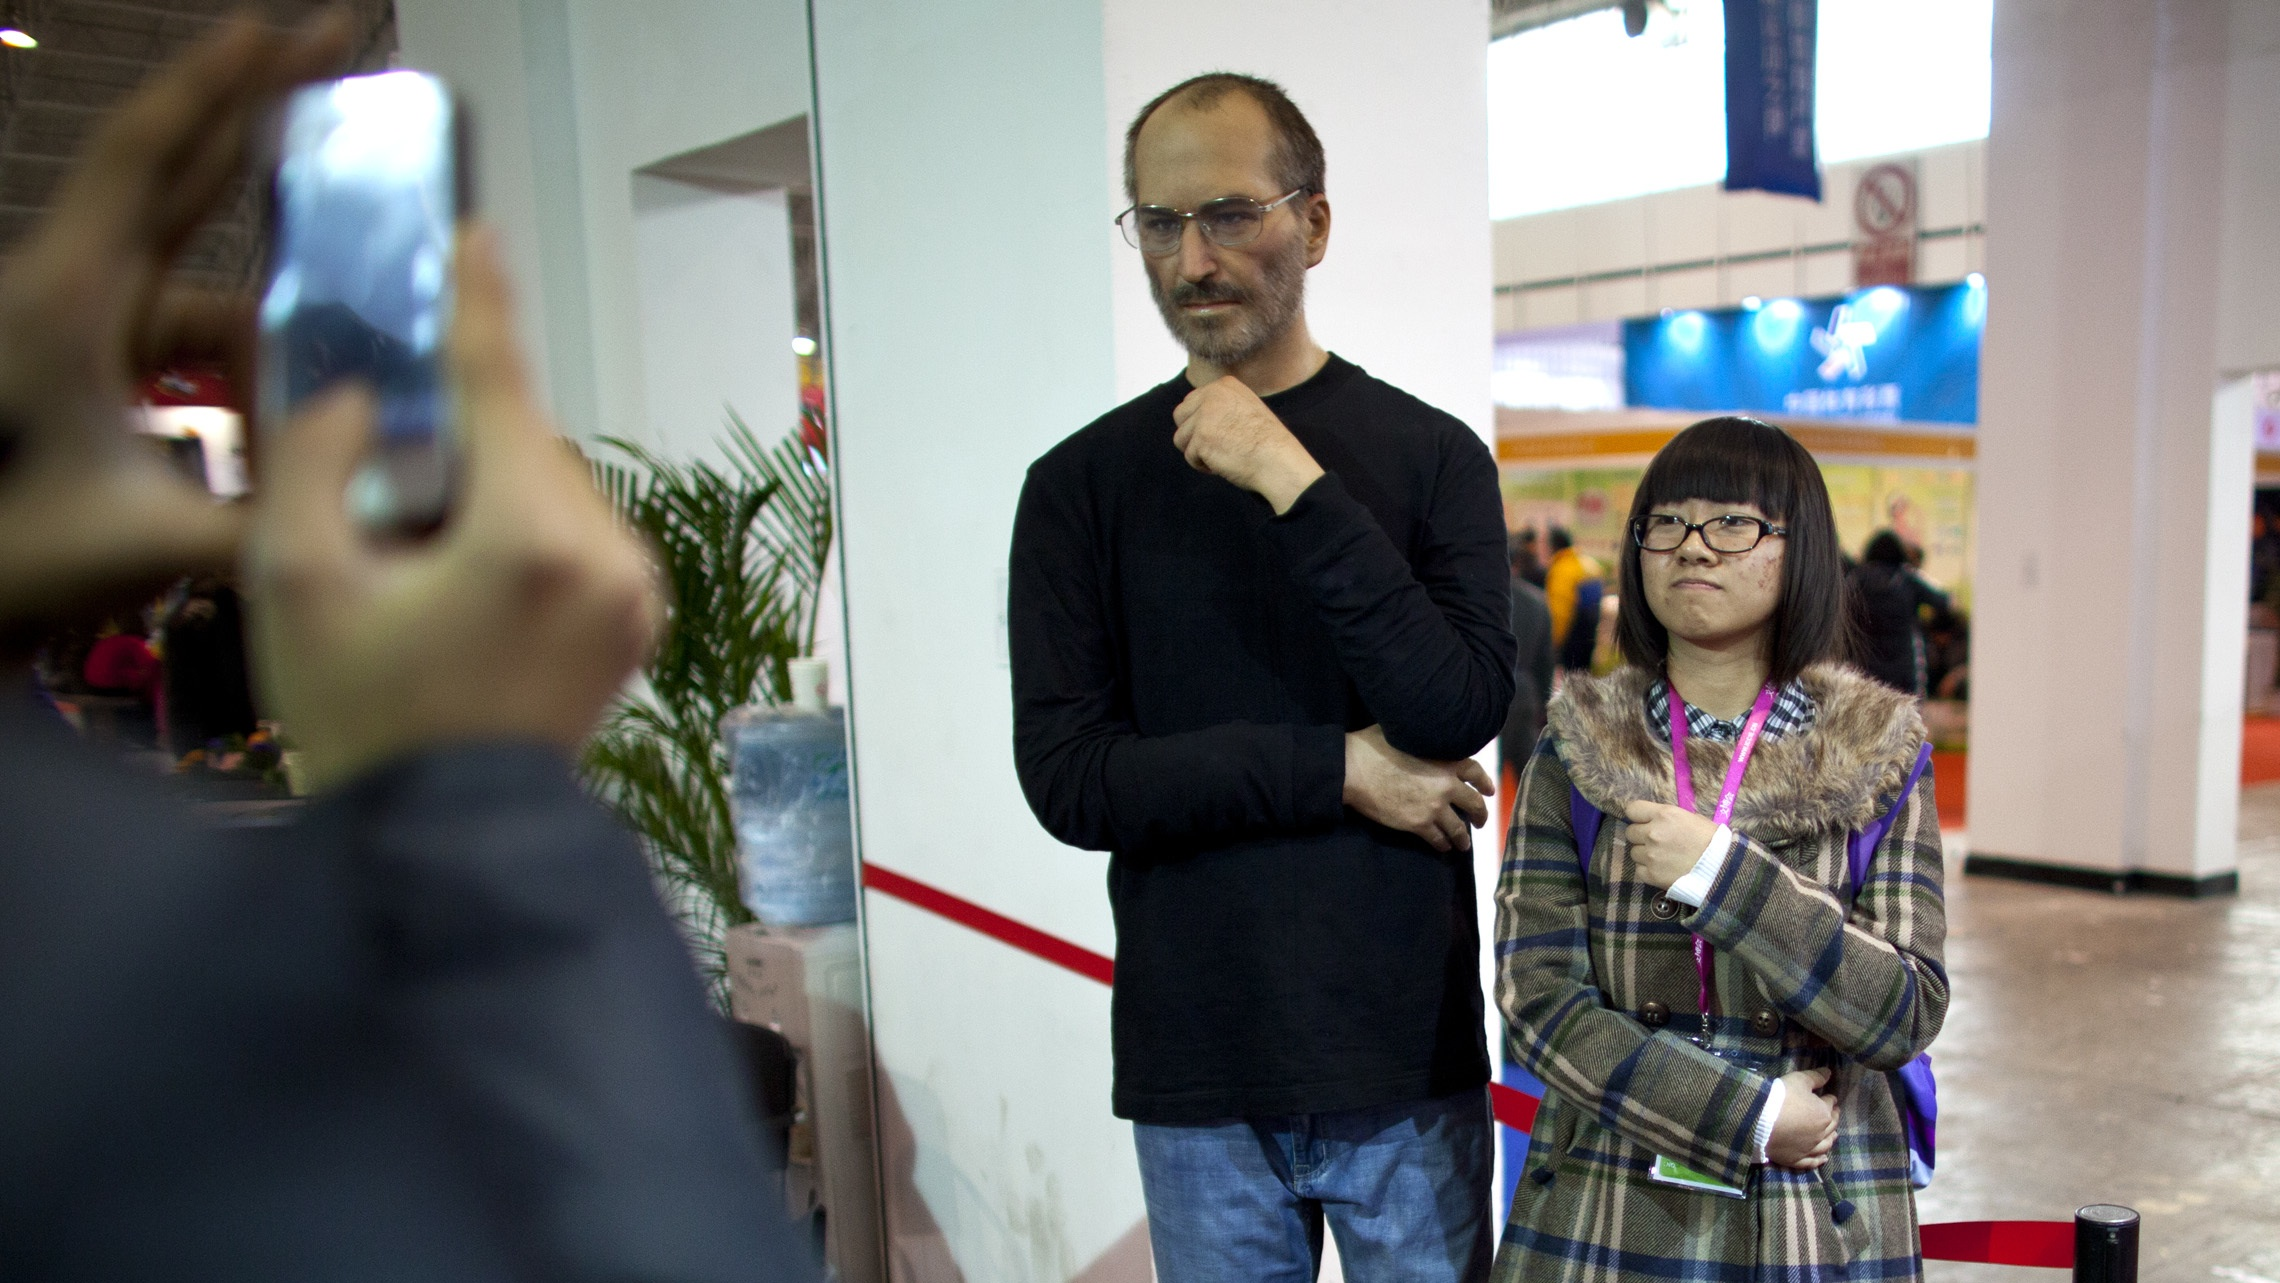 A woman poses for photos with a silicone rubber sculpture of late Apple co-founder Steve Jobs at a cultural and creative industry expo in Beijing, China, Saturday, Dec. 22, 2012. (AP Photo/Alexander F. Yuan)